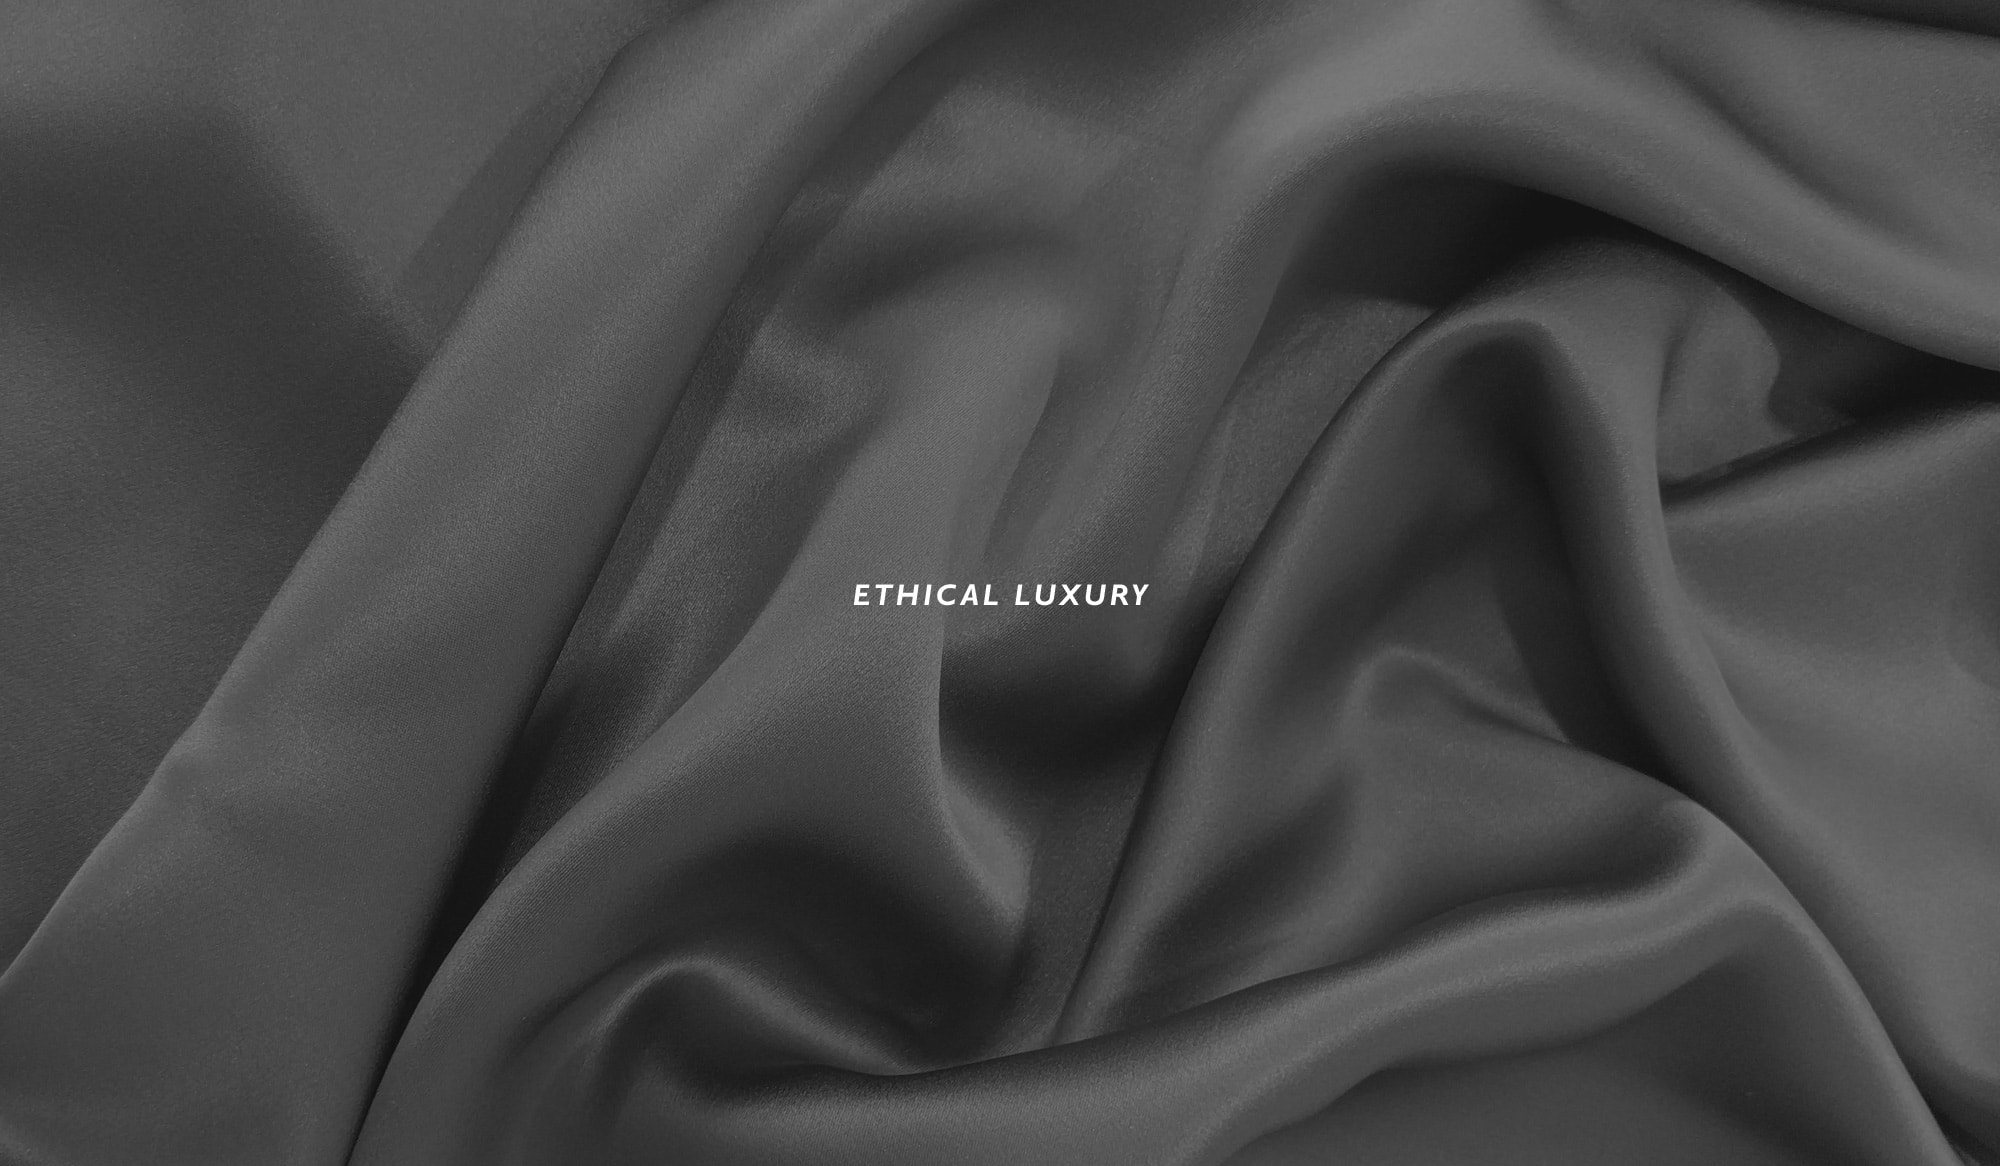 Ethical Luxury